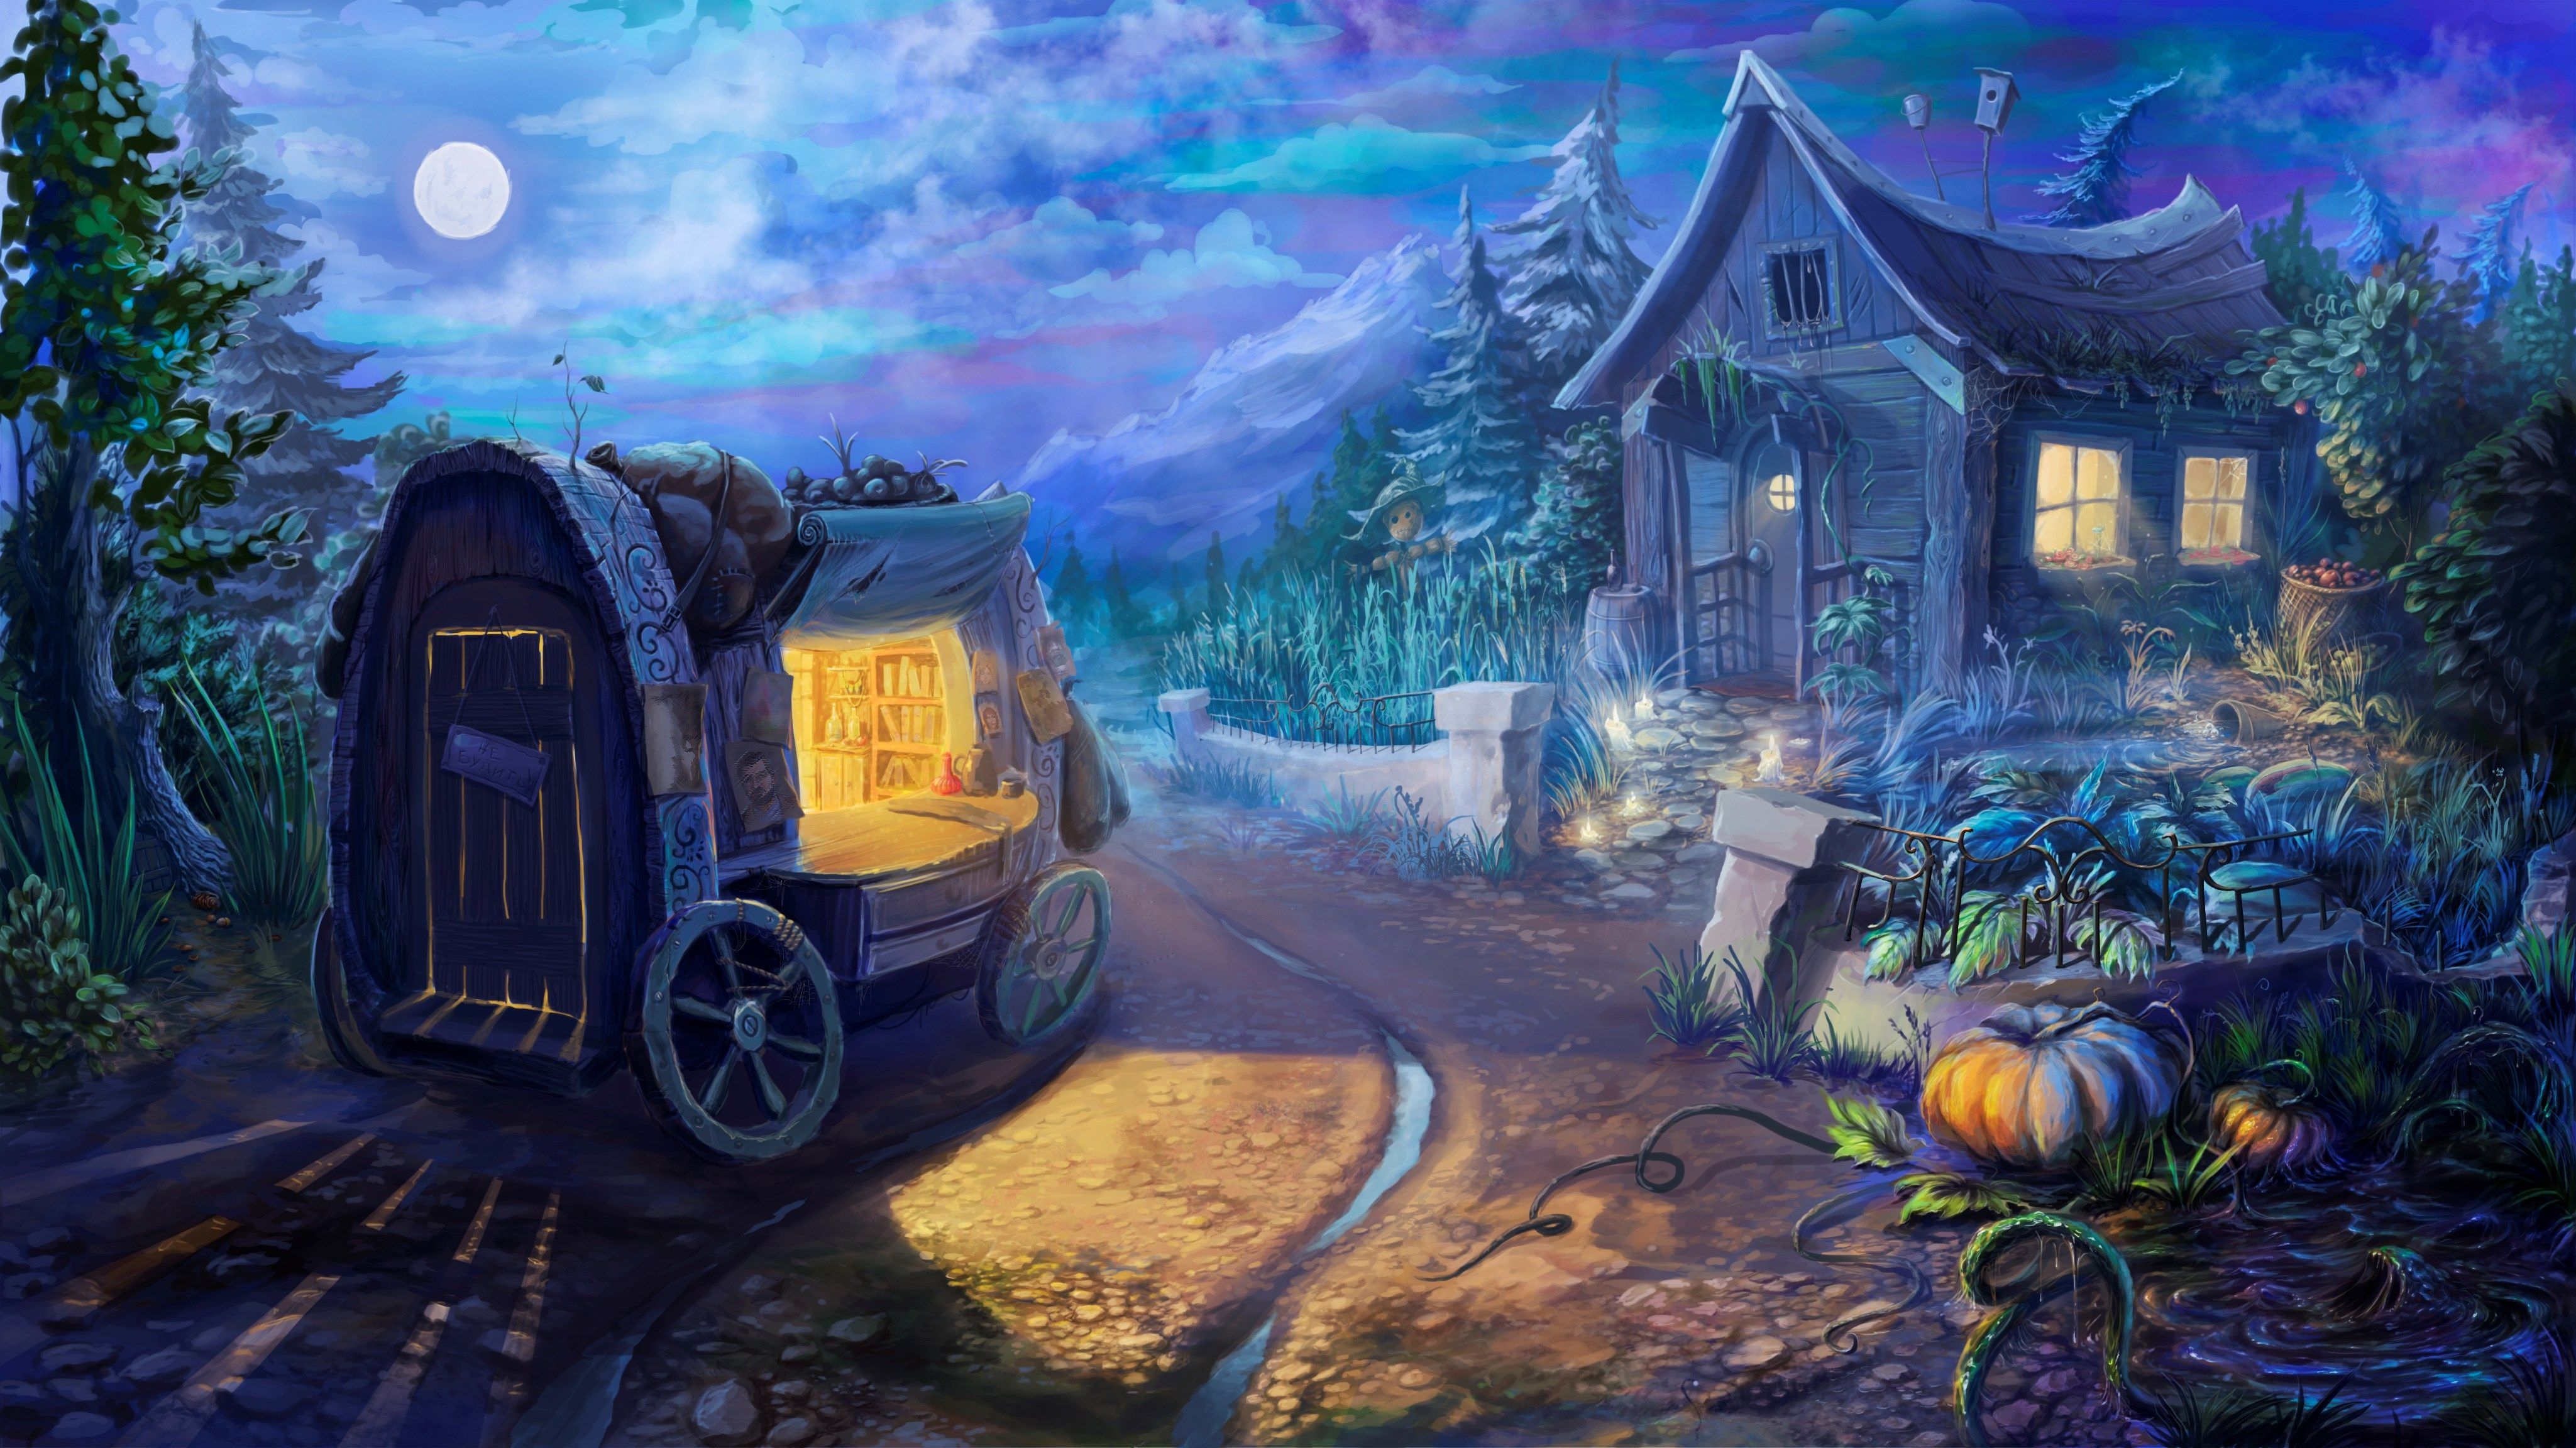 Pretty Fairytale Backround 4098x2304 1506 Kb Background For Photography Fantasy Art Landscapes Party Photo Booth Backdrop